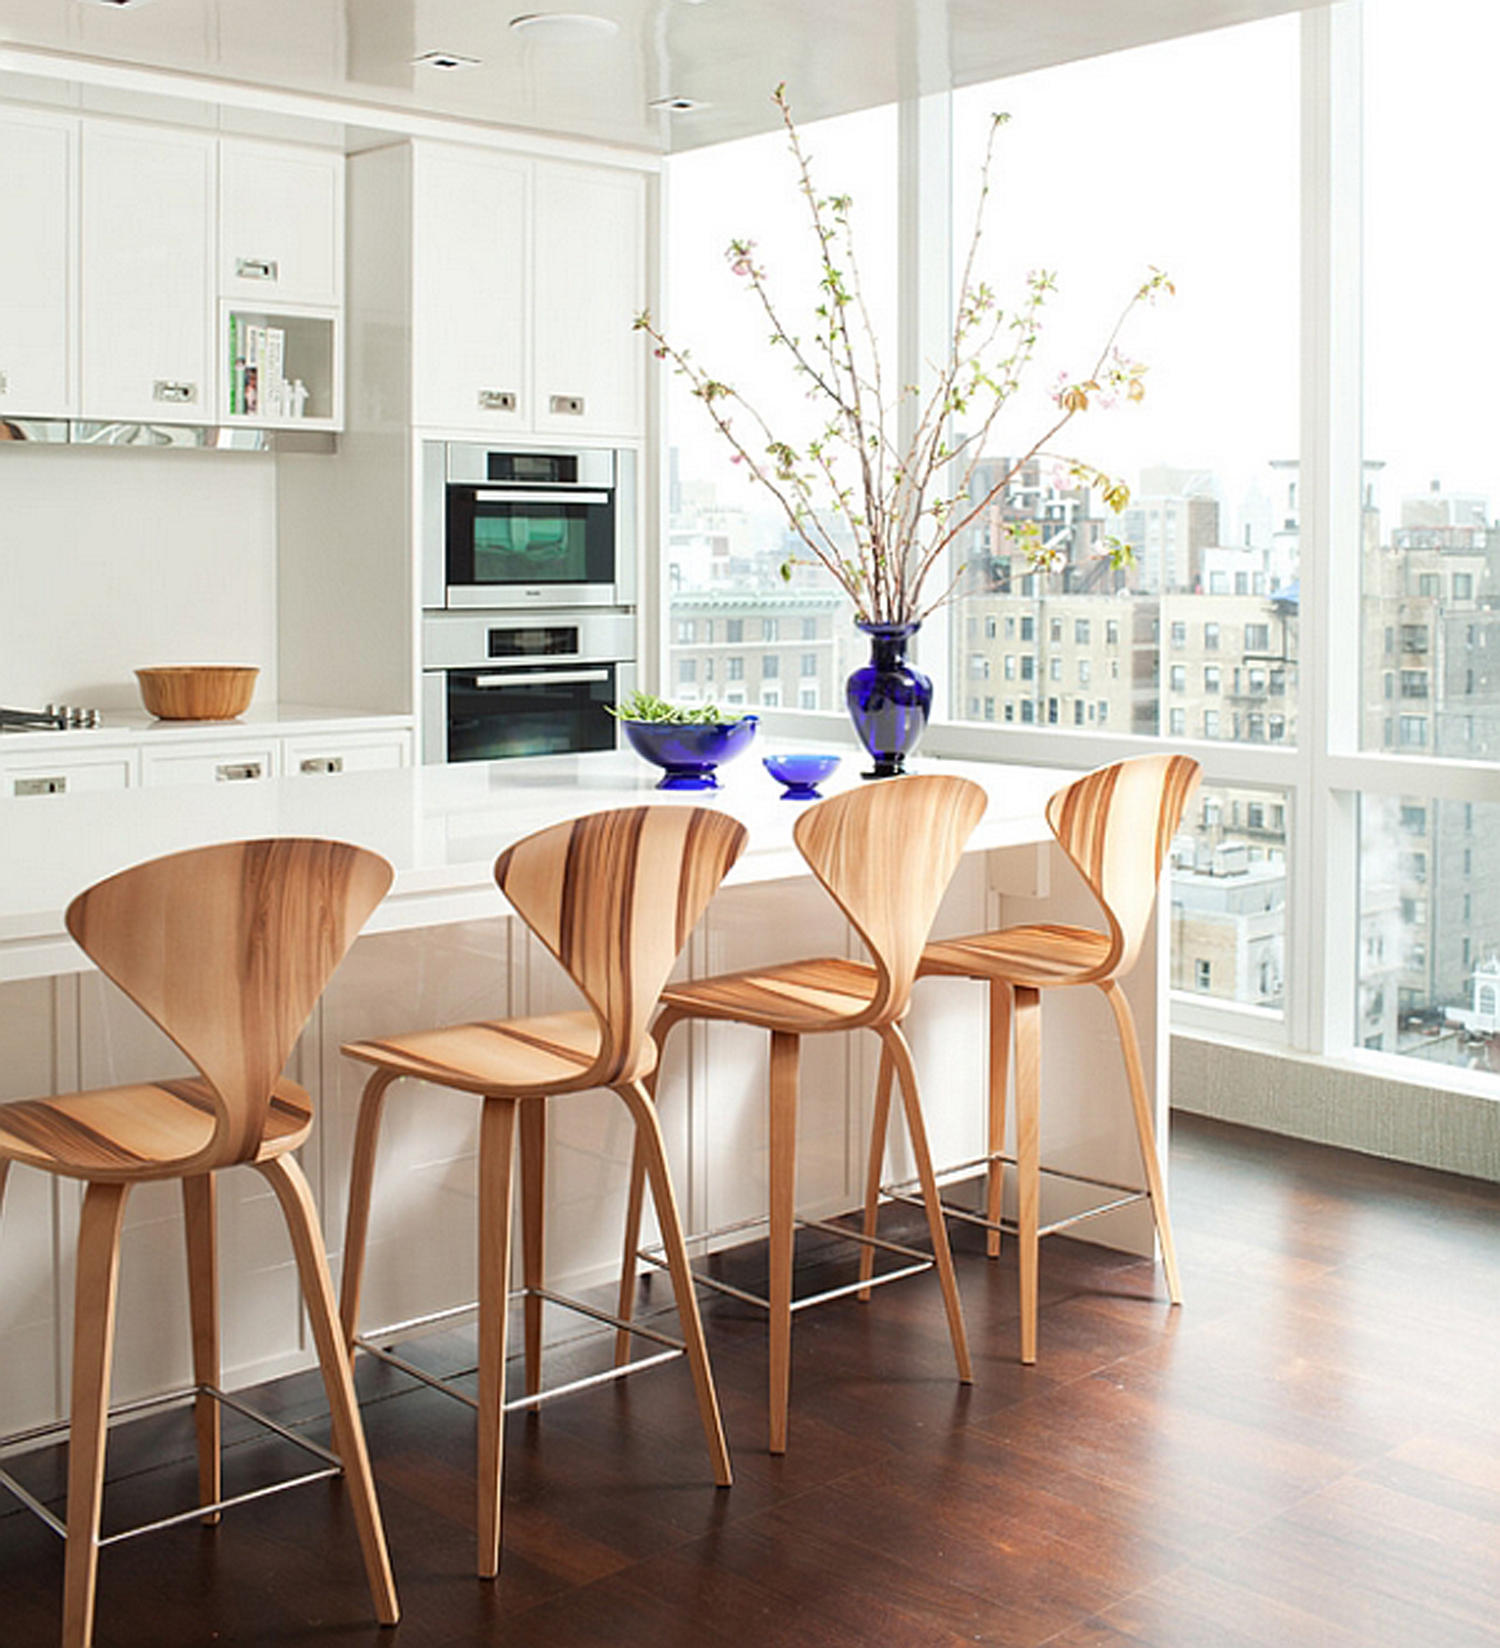 Exceptionnel Cherner Wood Base Stool By Cherner ...